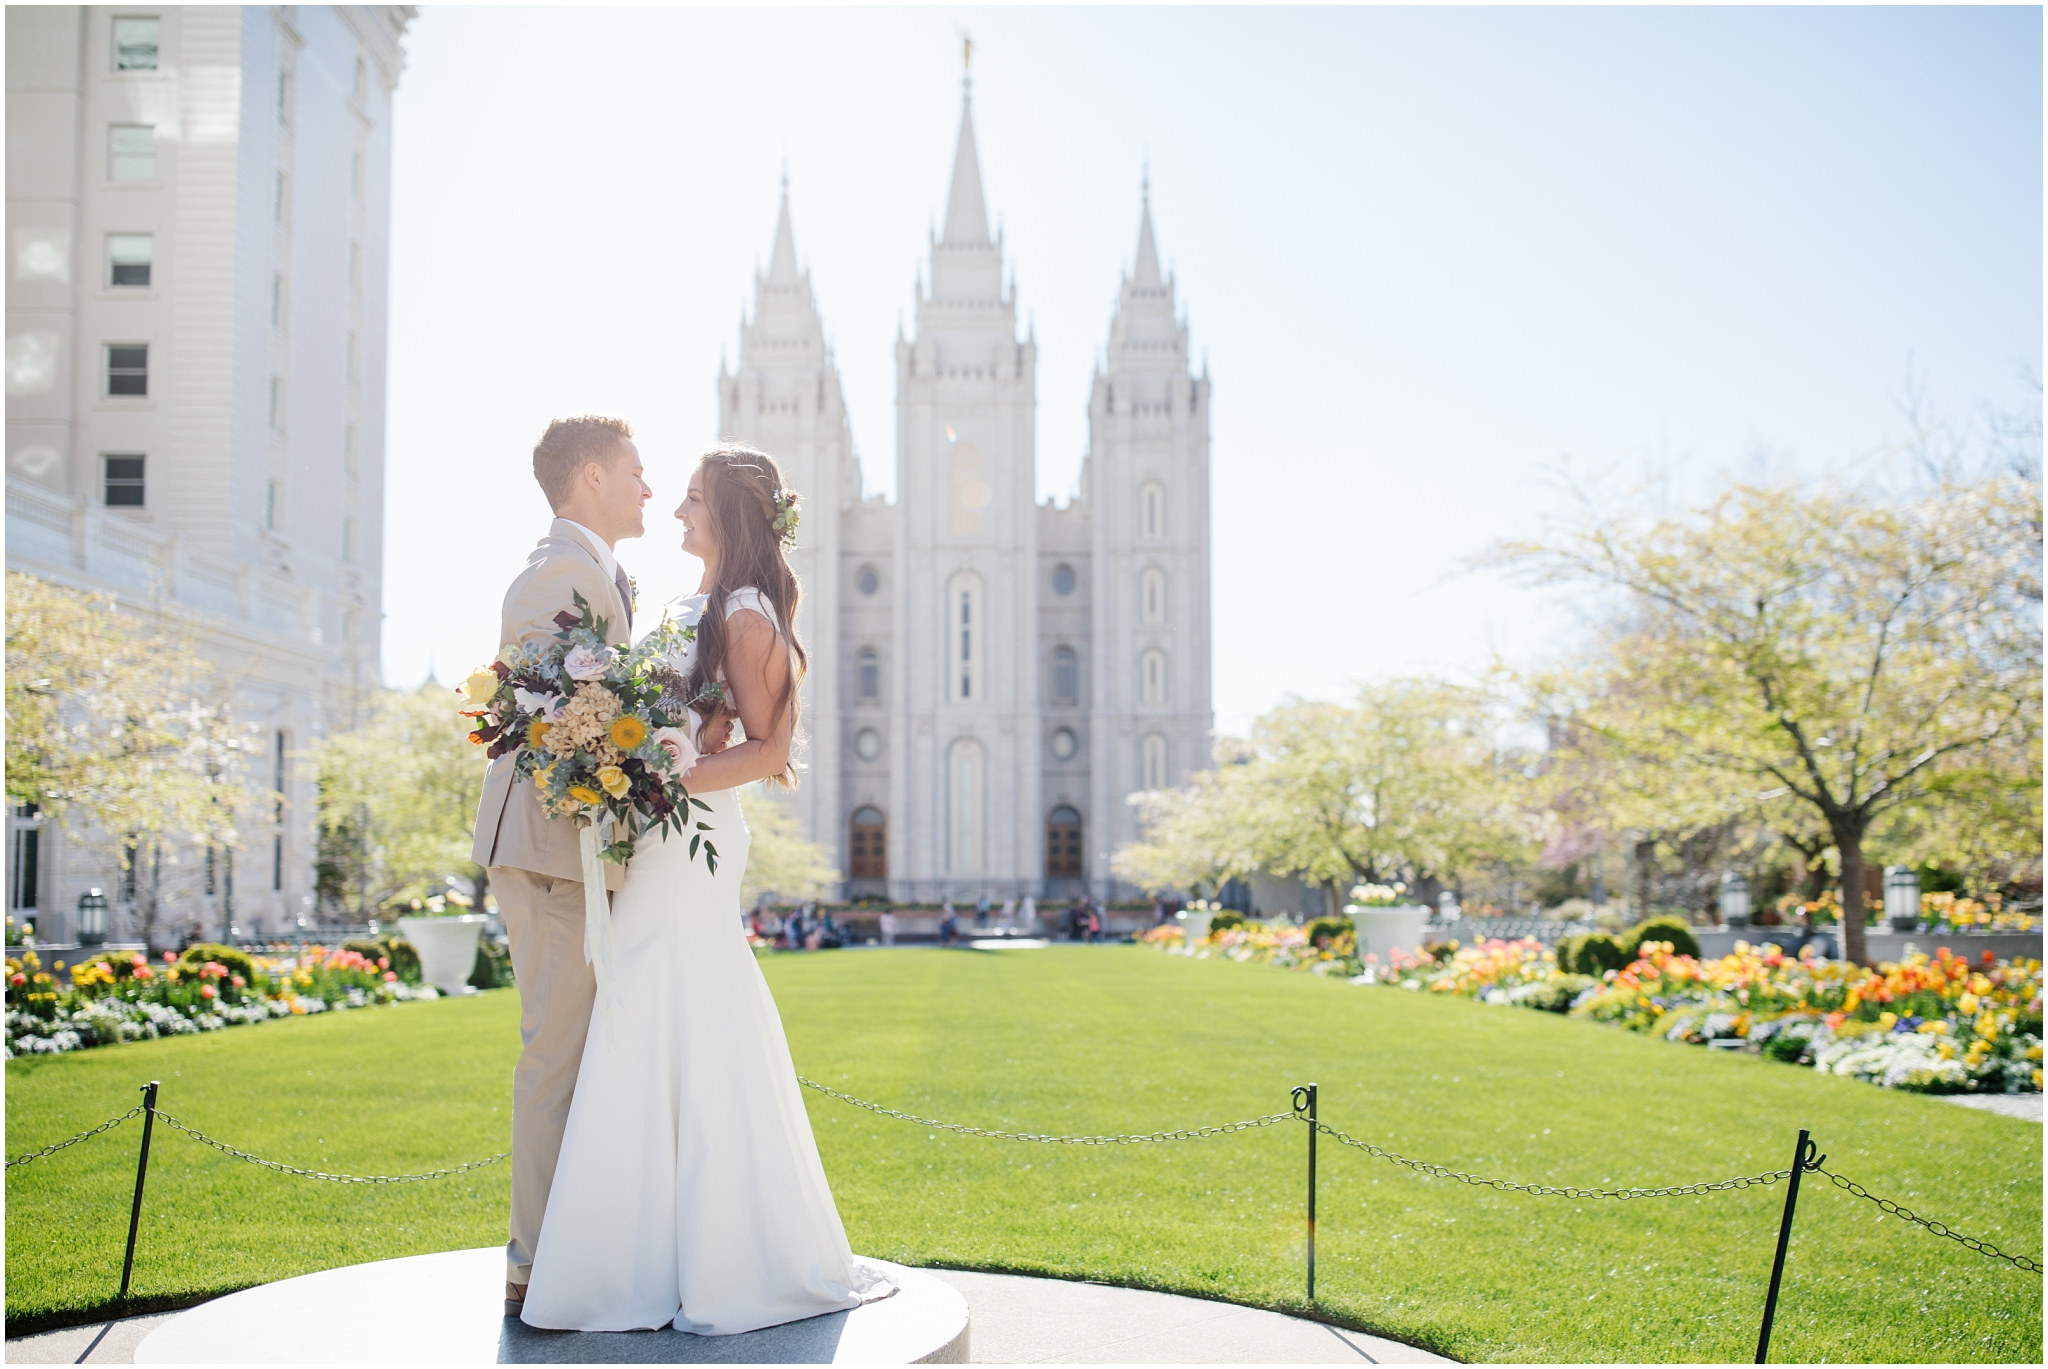 JC-Wedding-219_Lizzie-B-Imagery-Utah-Wedding-Photographer-Salt-Lake-City-Temple-Joseph-Smith-Memorial-Building-Reception.jpg